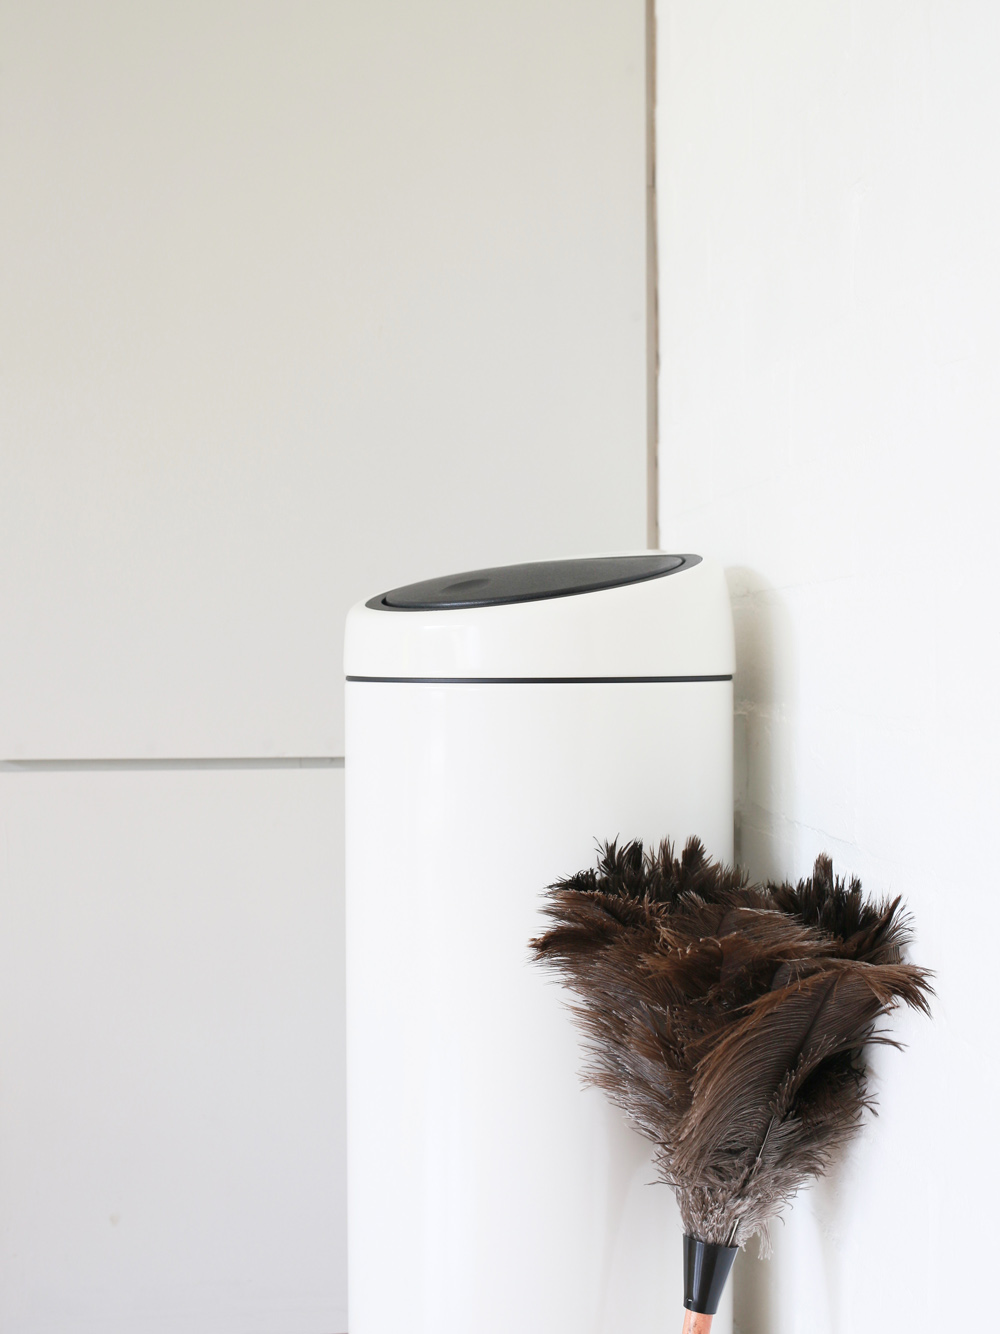 Brabantia styling by Design Hunter